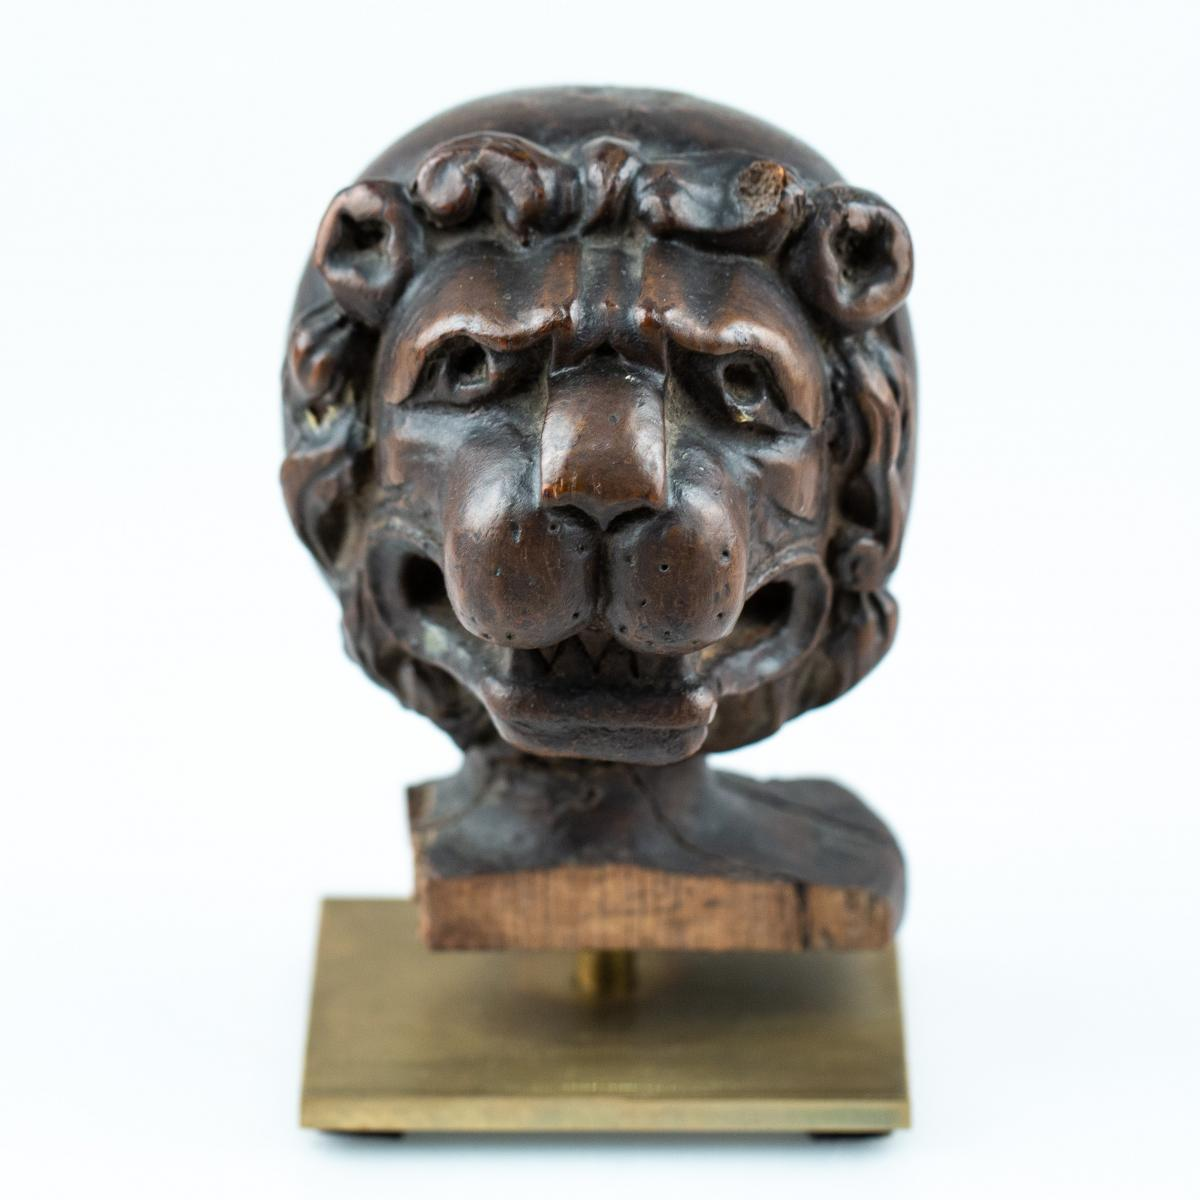 Lion Head - Carved Wood - 17th Century, Flanders?